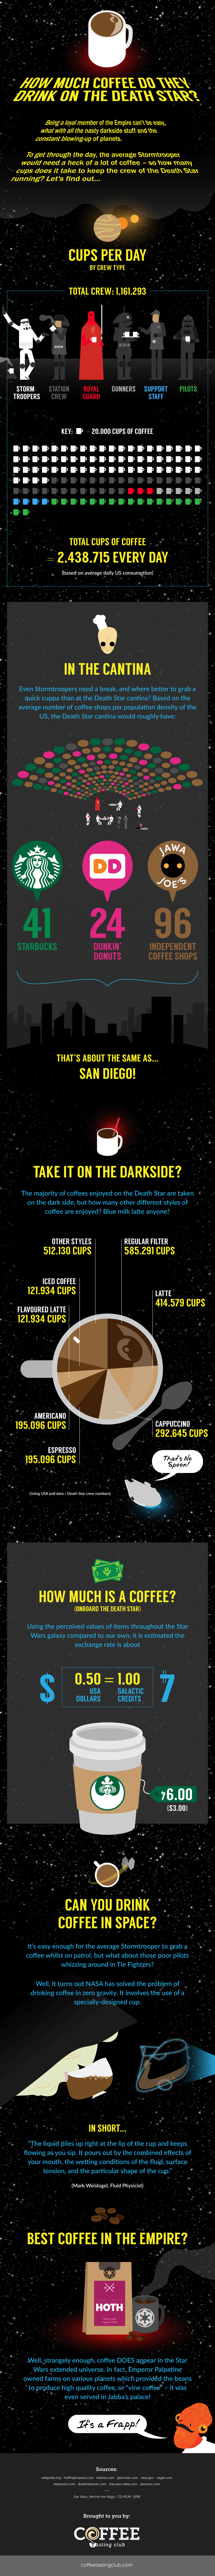 coffee on the death star 1